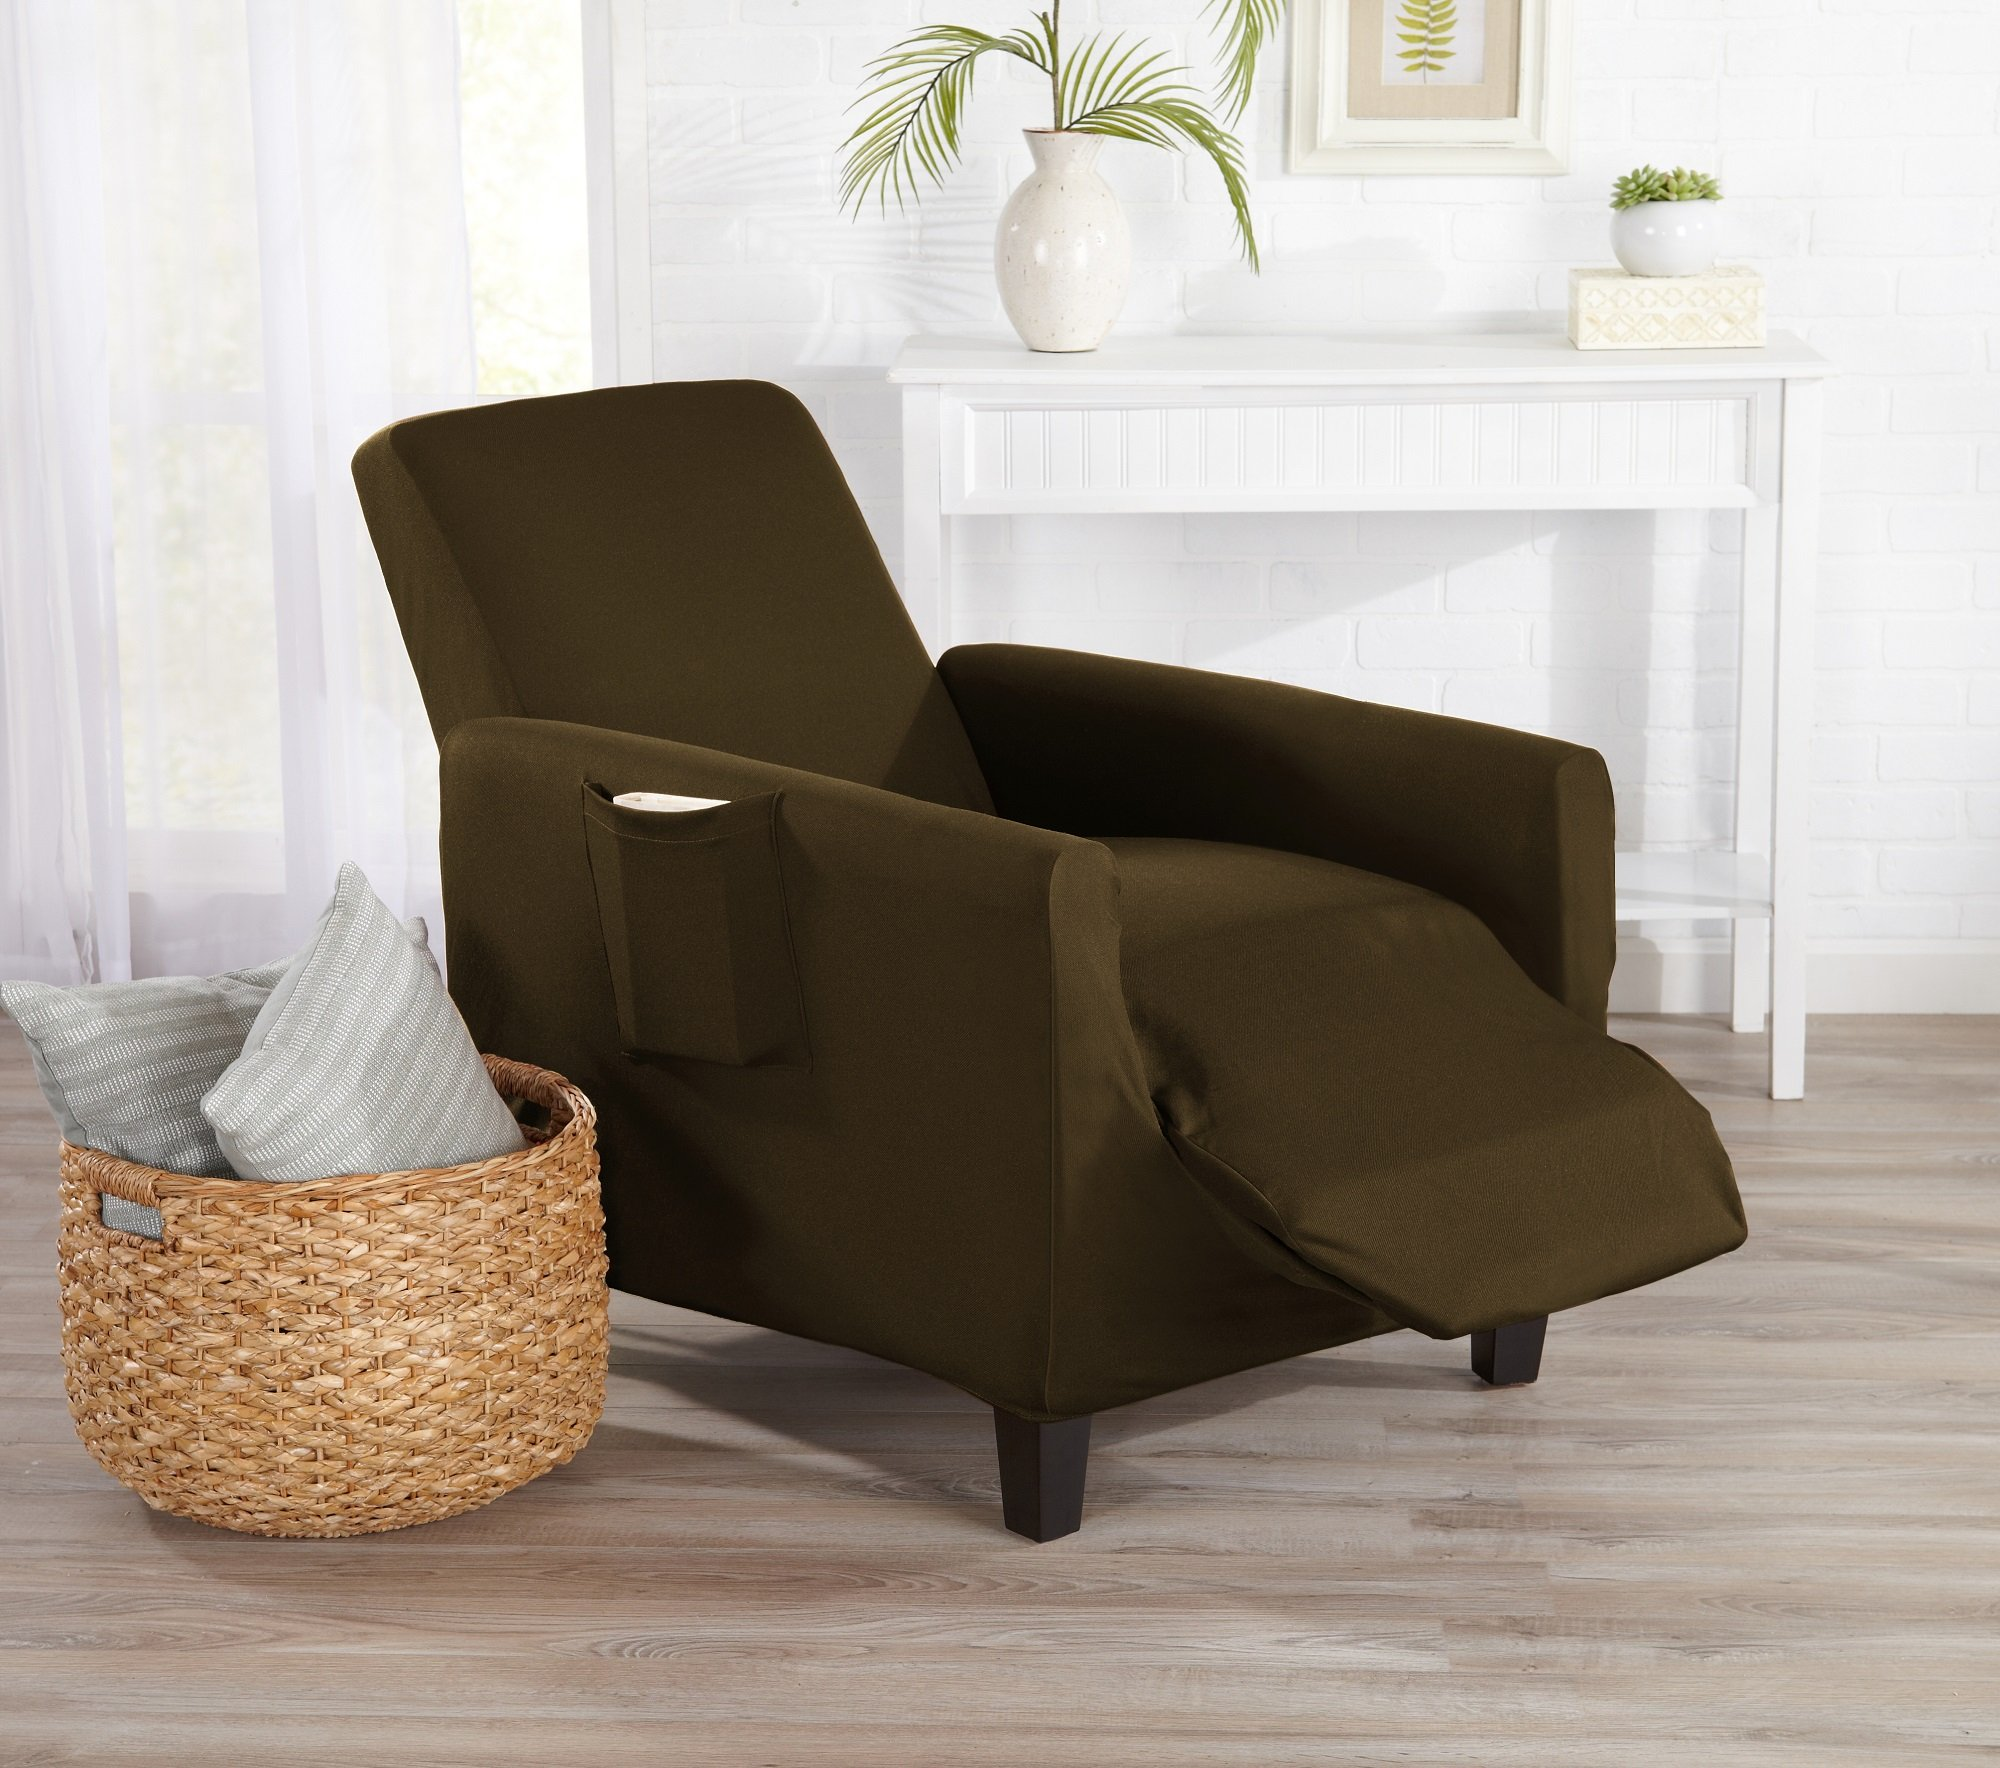 Great Bay Home One Piece Recliner Silpcover, Slip Resistant, Stylish Furniture Cover/Protector. Dawson Collection Basic Strapless Slipcover by Brand. (Recliner, Walnut Brown)